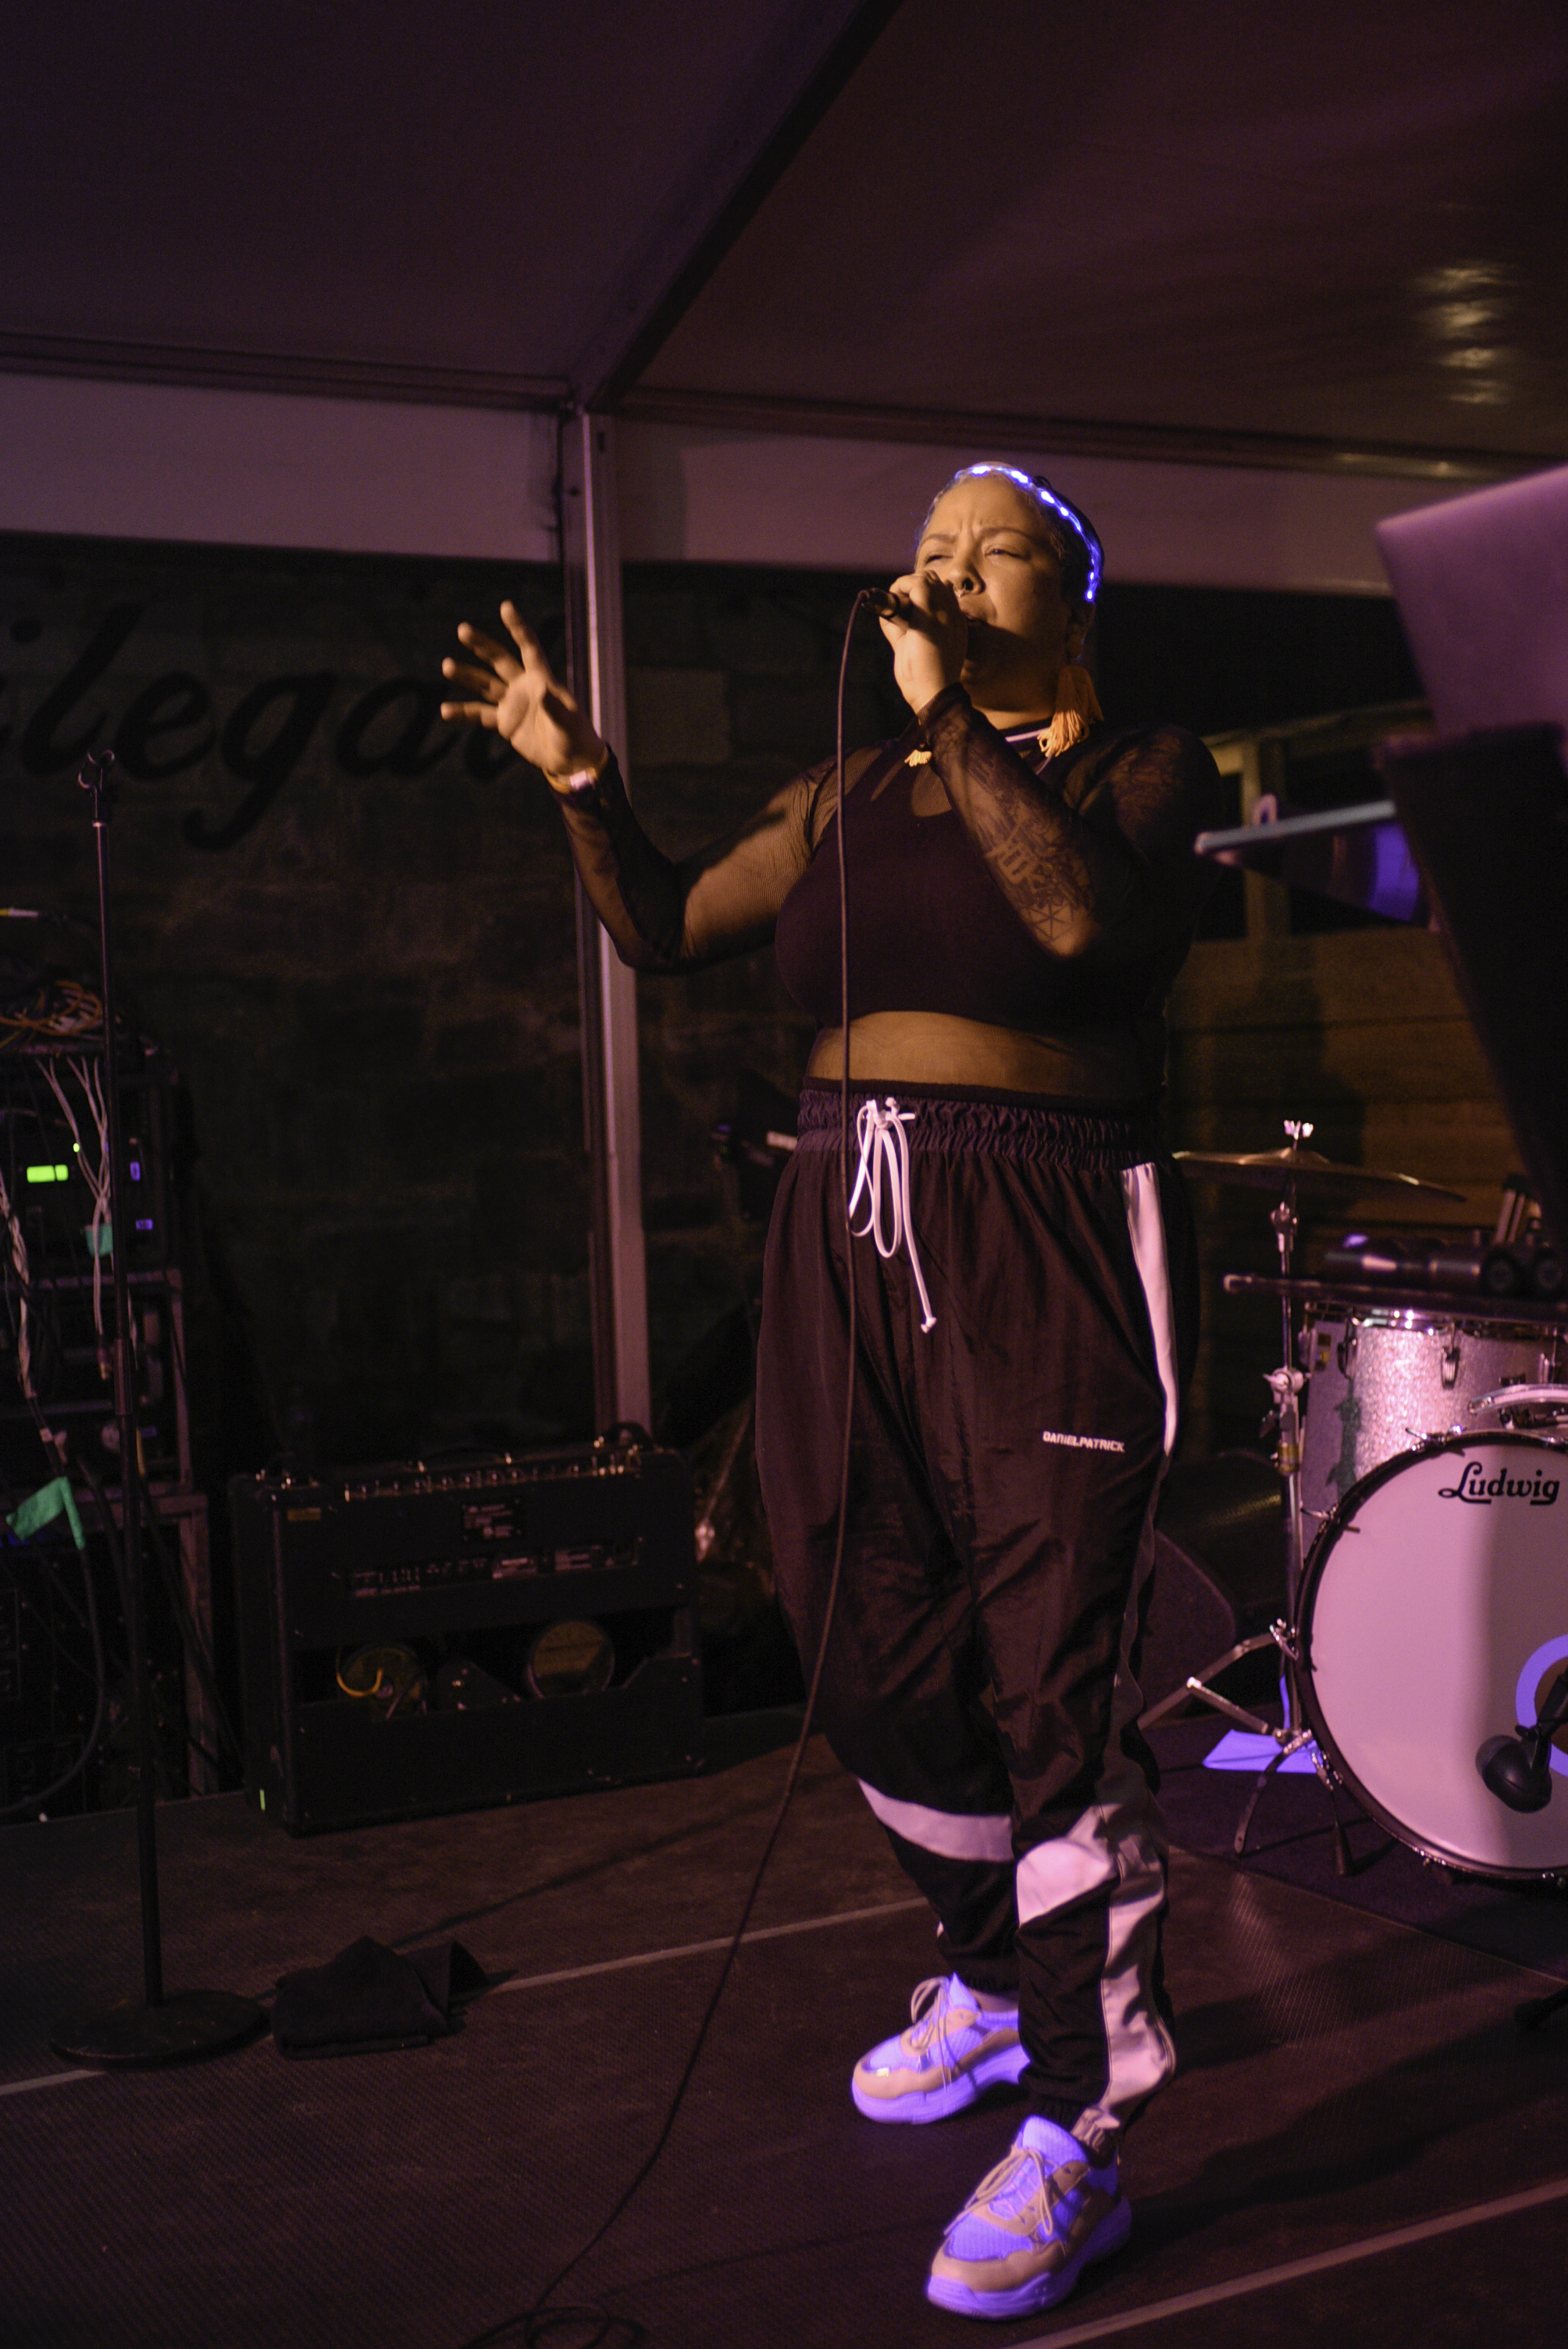 Drama is an R&B best friend duo formed in Chicago with Austin native Via Rosa on vocals and Na'el Shehade producing the music. Drama played the Showtime showcase at Clive bar on Rainey St.